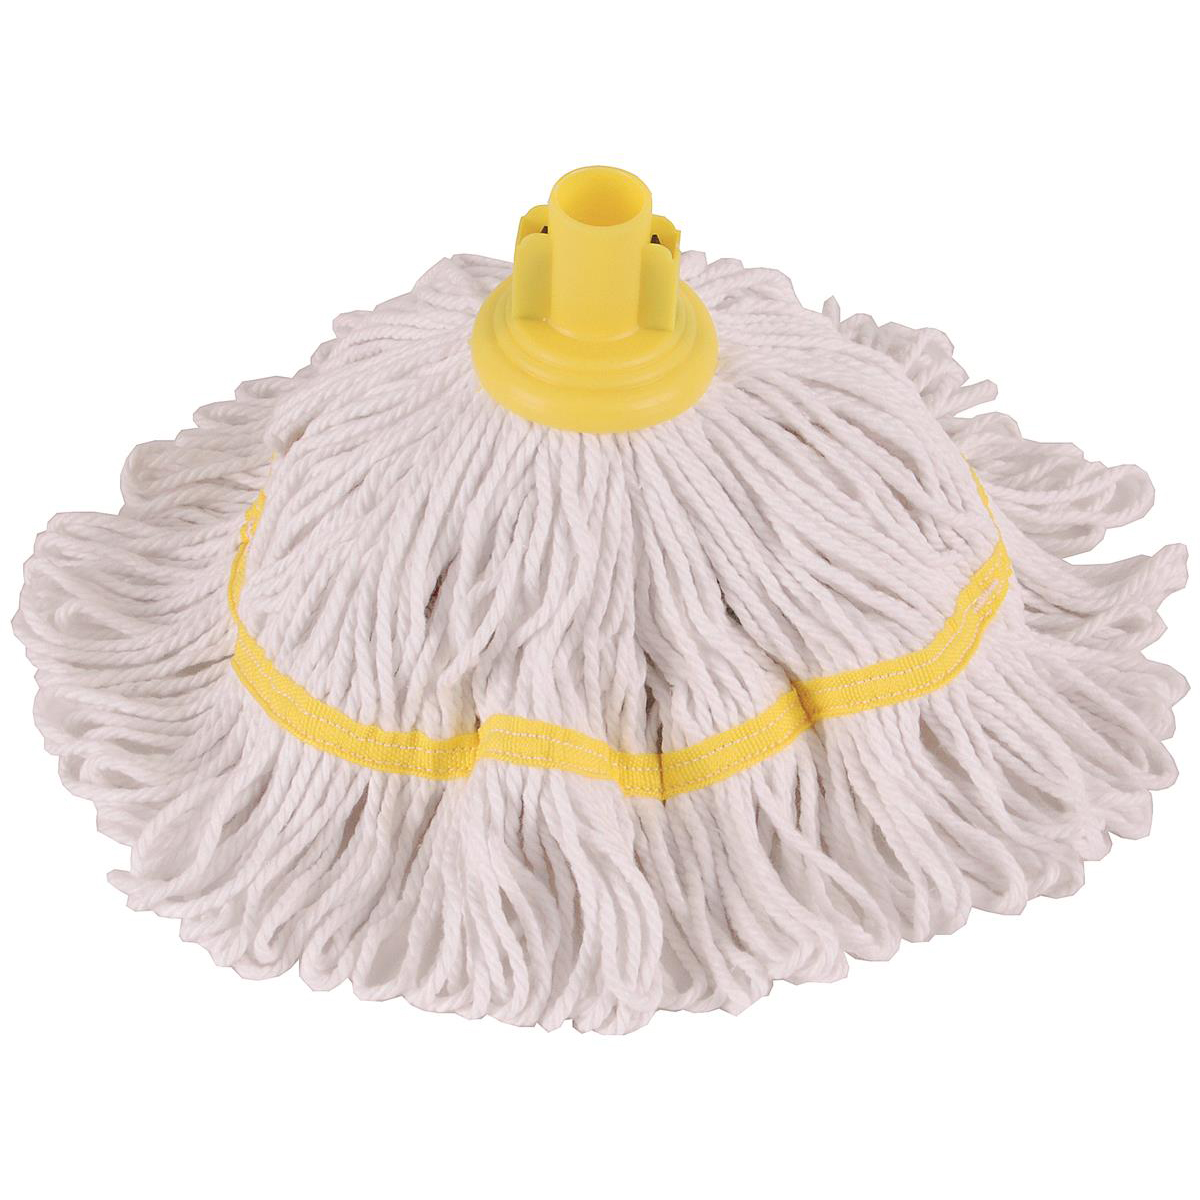 Mops & Buckets Robert Scott & Sons Hygiemix T1 Socket Cotton & Synthetic Colour-coded Mop 200g Yellow Ref MHH200Y